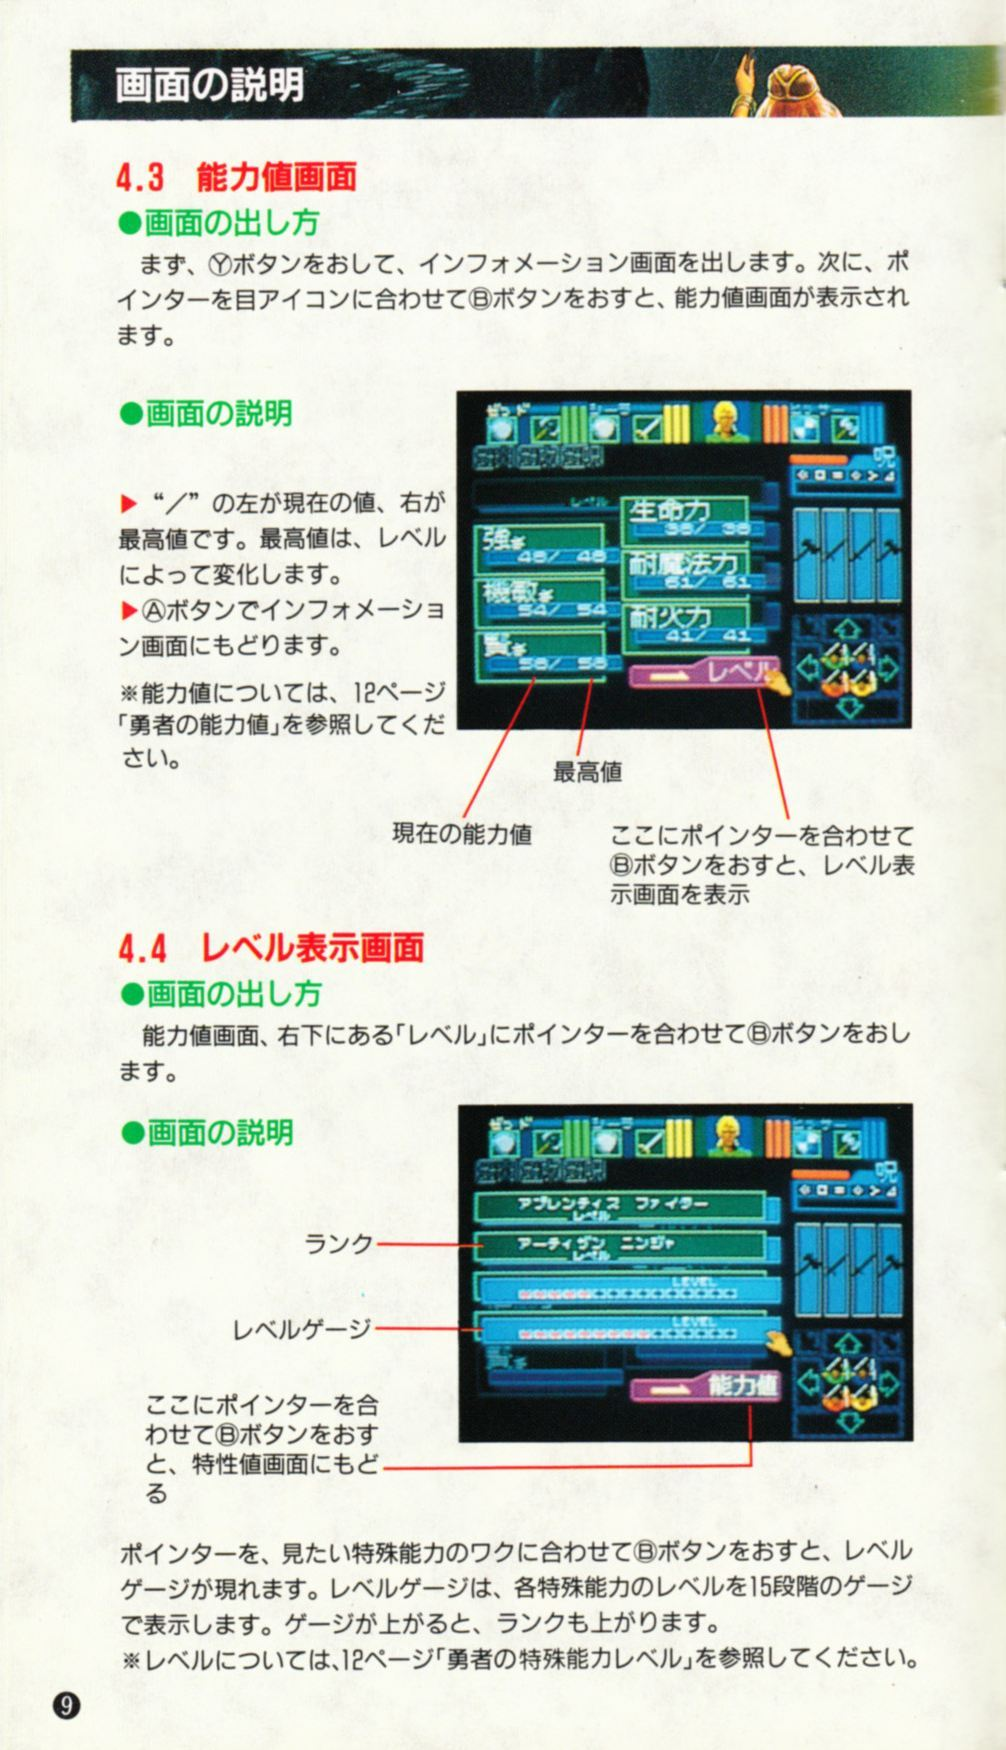 Game - Dungeon Master - JP - Super Famicom - Manual - Page 012 - Scan